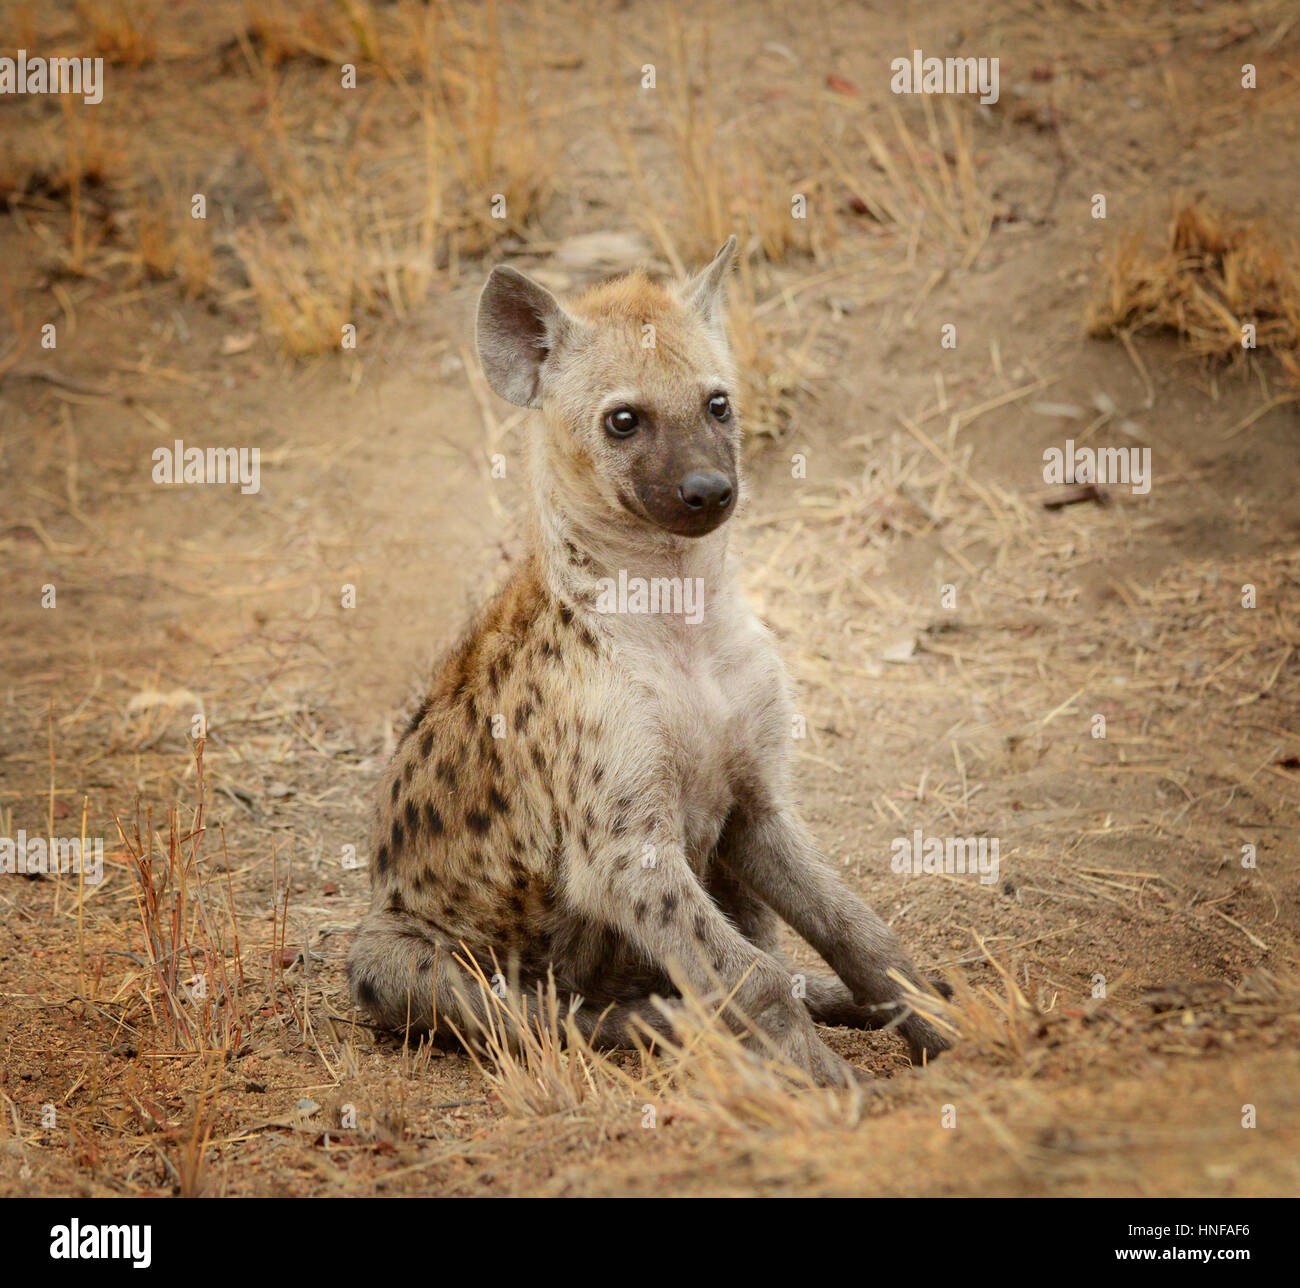 Young hyena pup in Kruger National Park in South Africa watching her surroundings - Stock Image